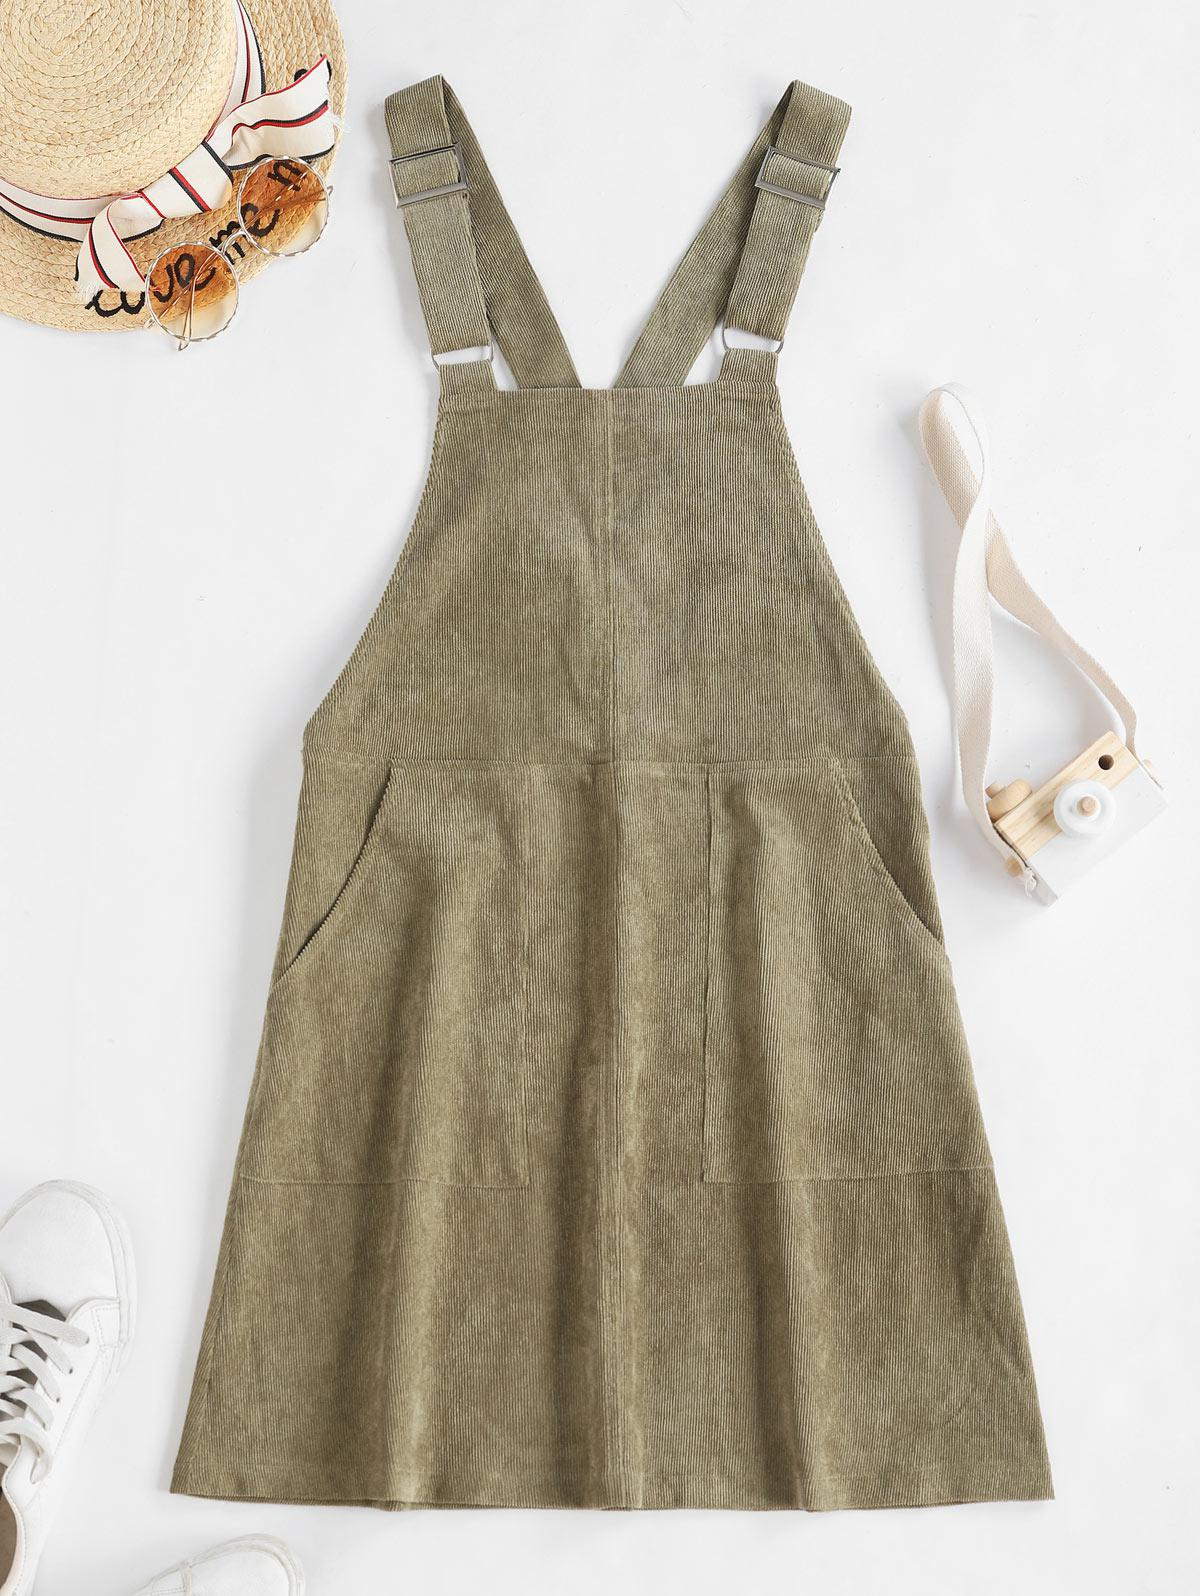 ZAFUL Double Pocket Buckle Strap Corduroy Pinafore Dress, Camouflage green